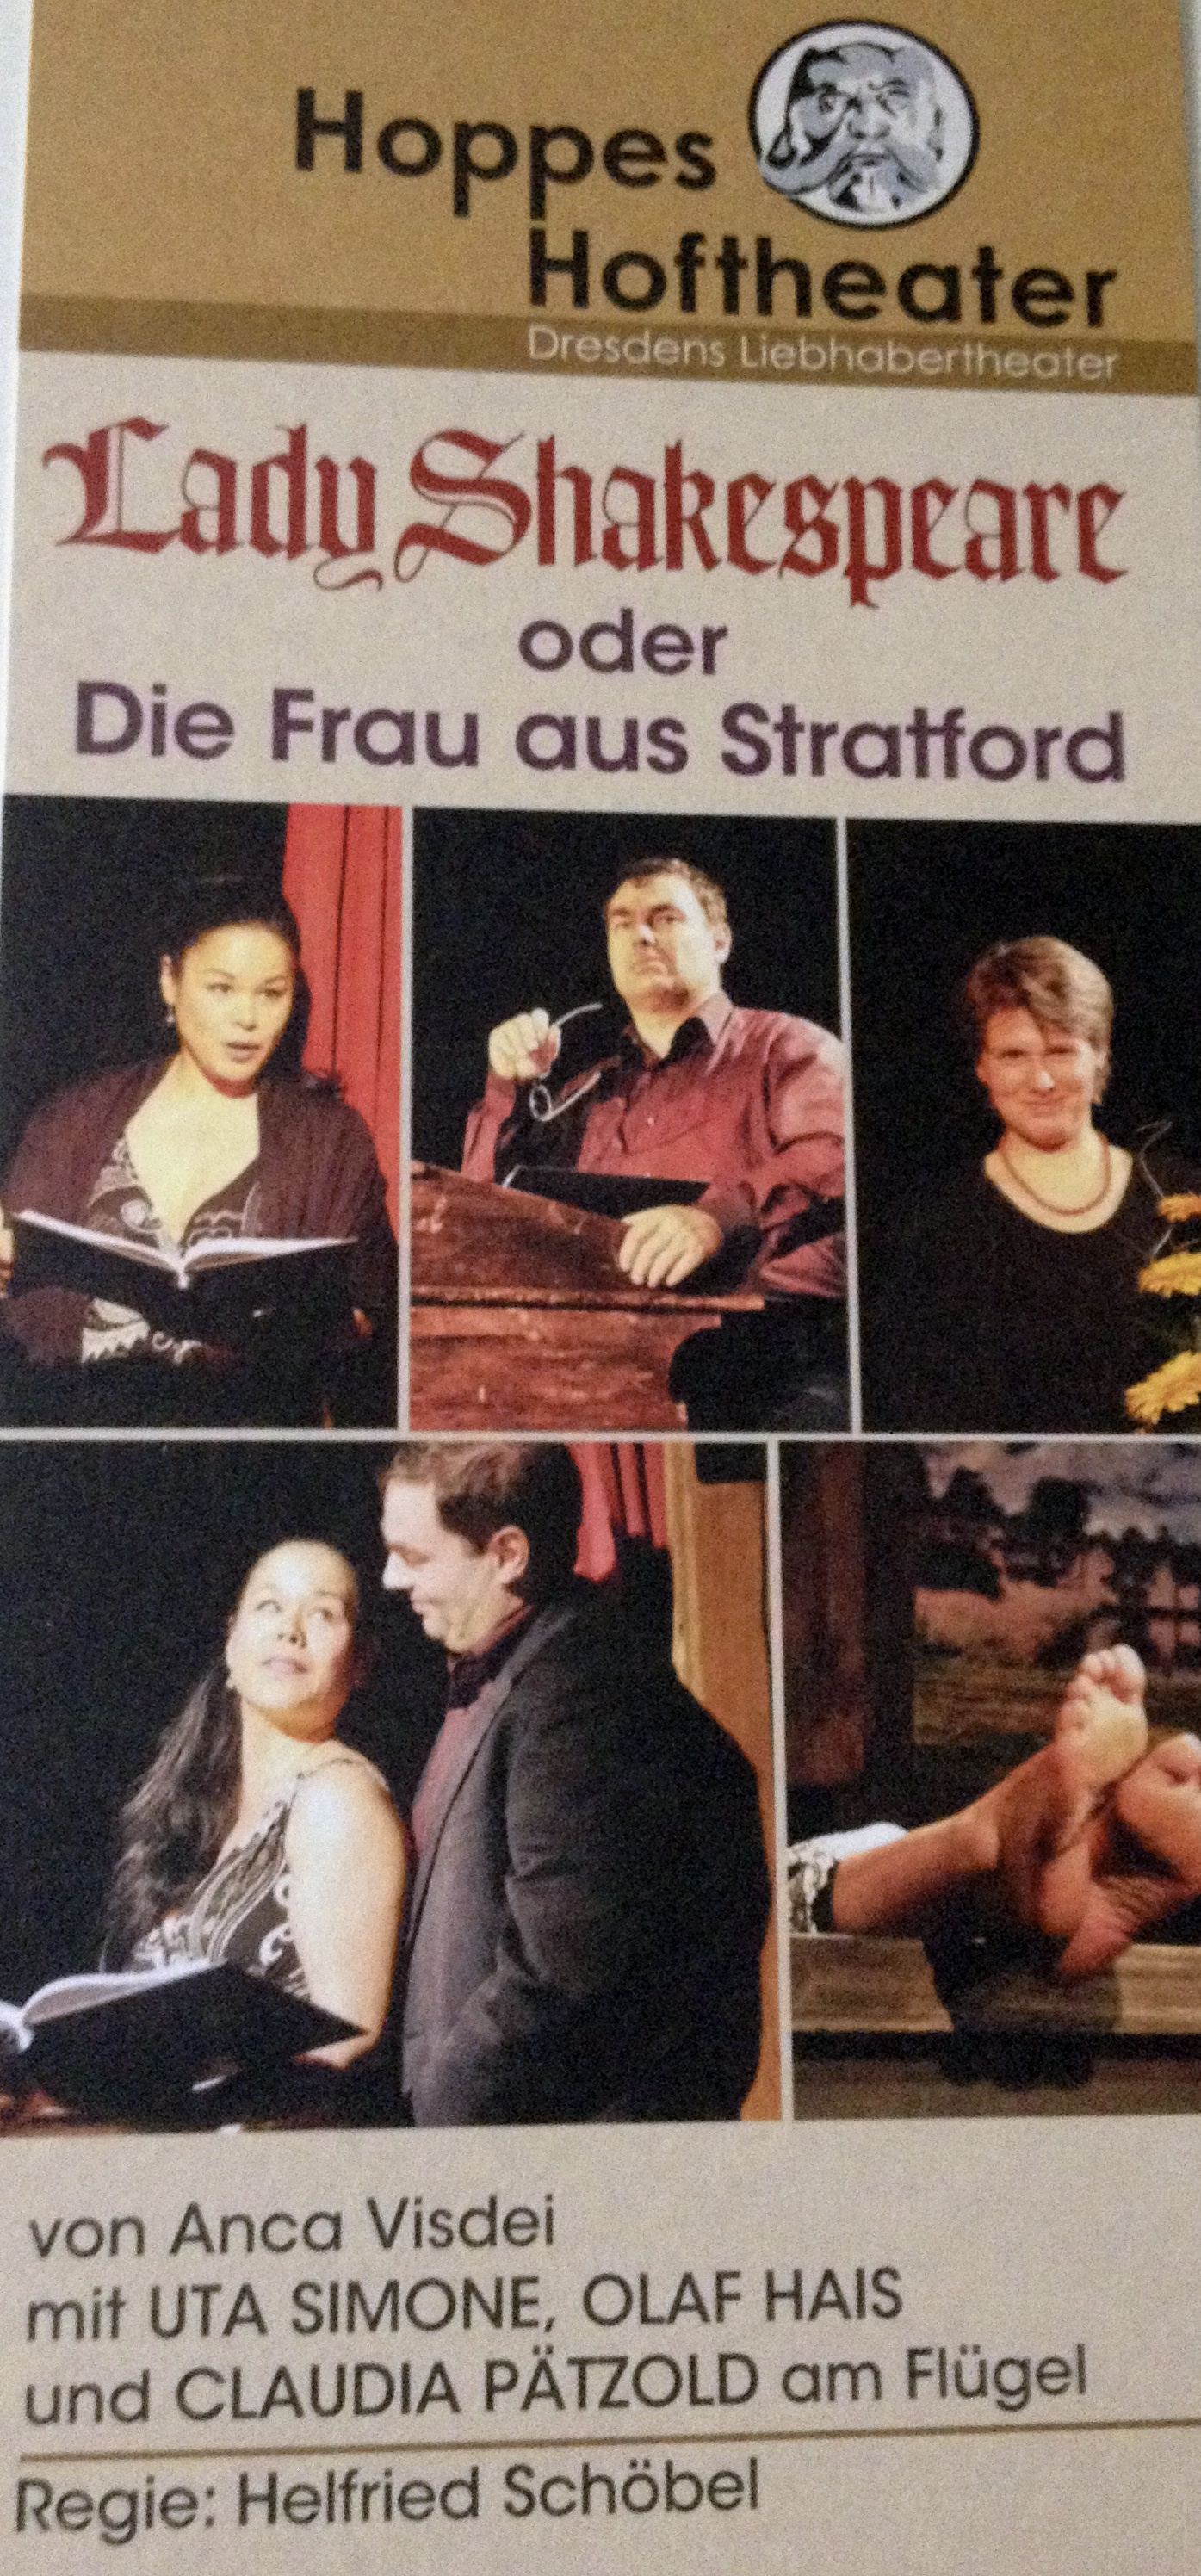 Lady Shakespeare en Allemand